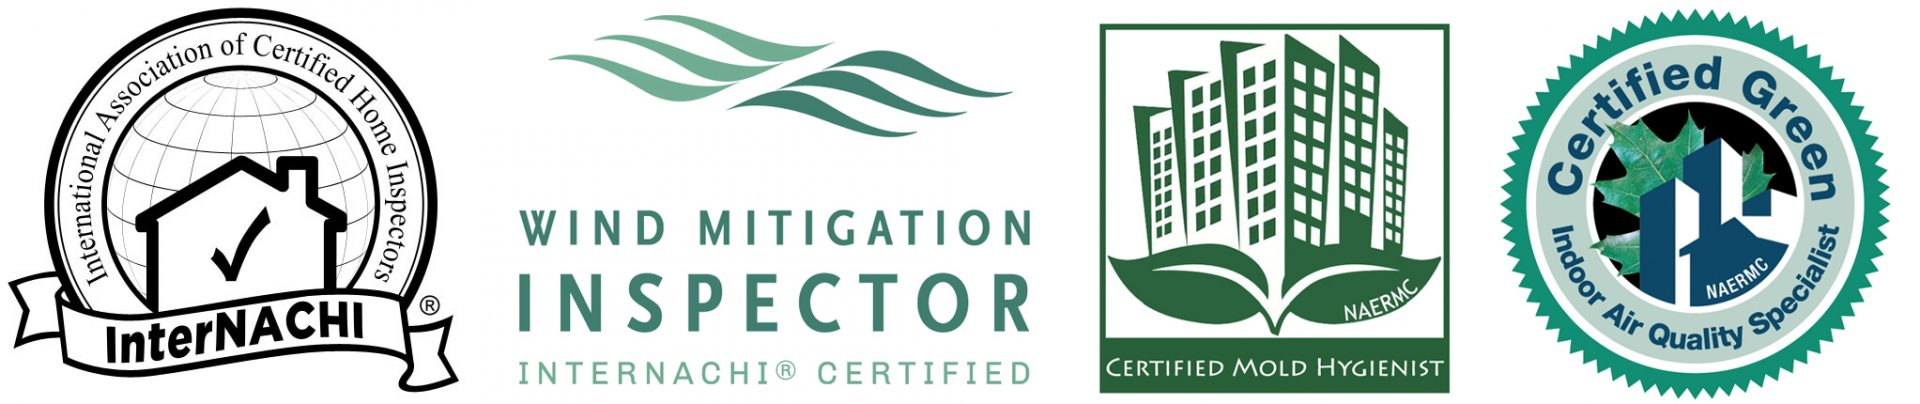 Certification Logos: International Association of Certified Home Inspectors (InterNACHI), InterNACHI Certified Wind Mitigation Inspector, NAERMC Certified Mold Hygienist, NAERMC Certified Green Indoor Air Quality Specialist.